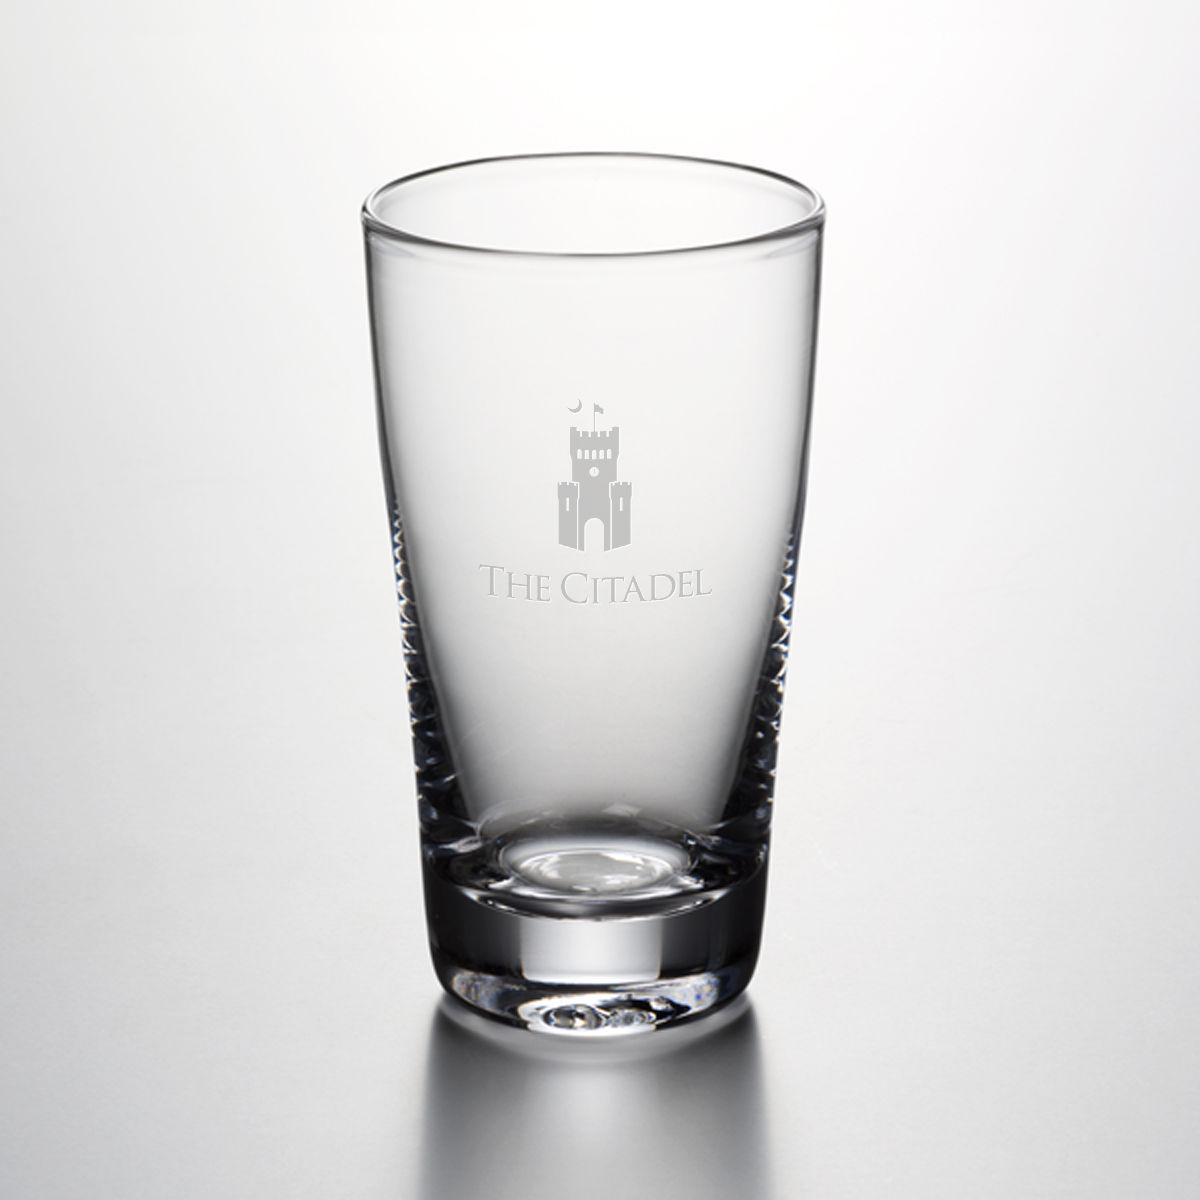 Citadel Pint Glass by Simon Pearce